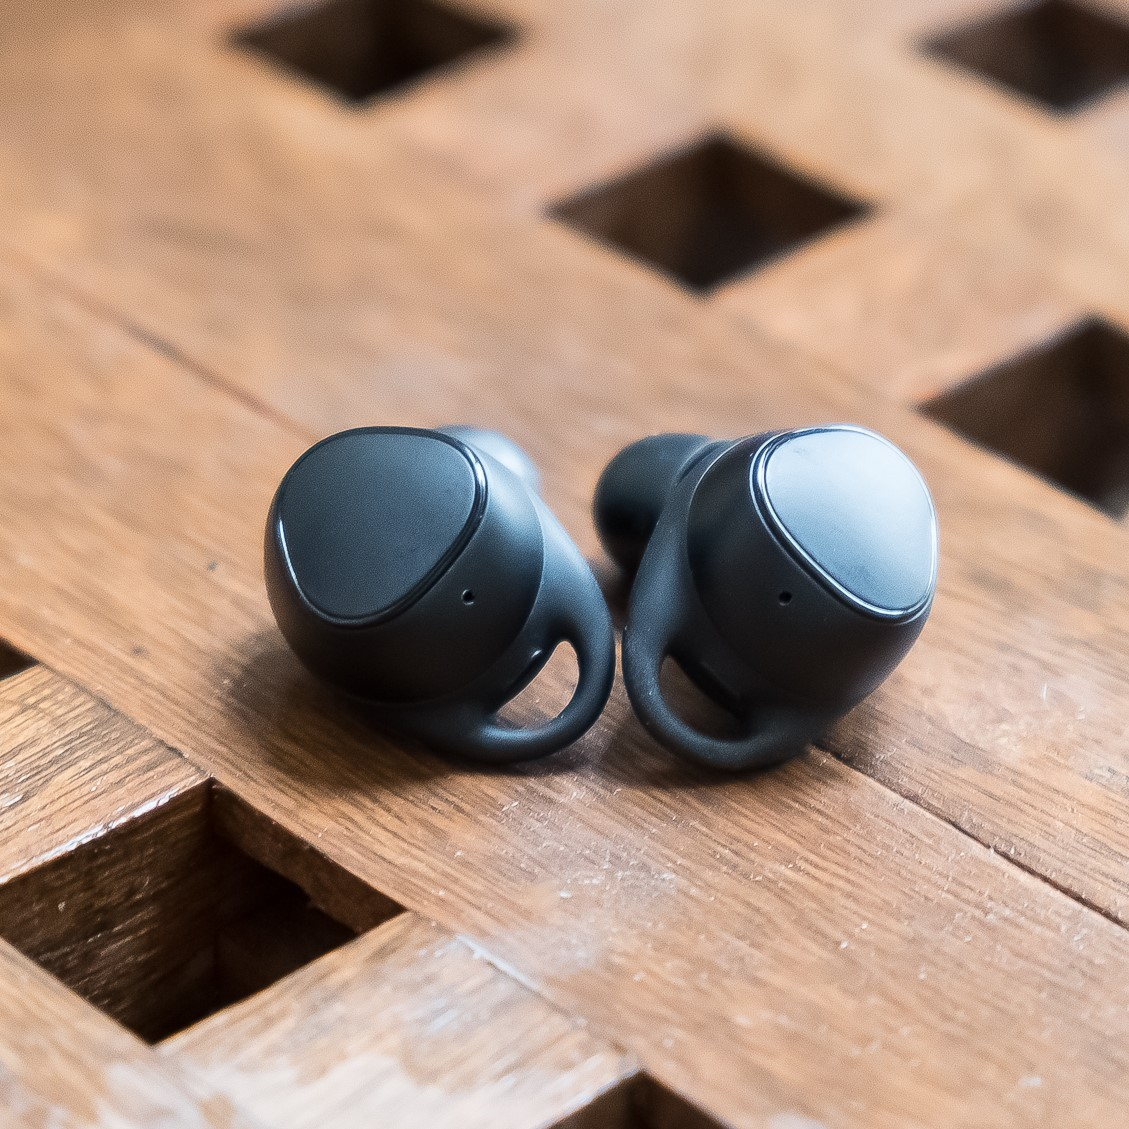 66157f5e33e Samsung Gear IconX (2018) review: hitting the sweet spot - The Verge